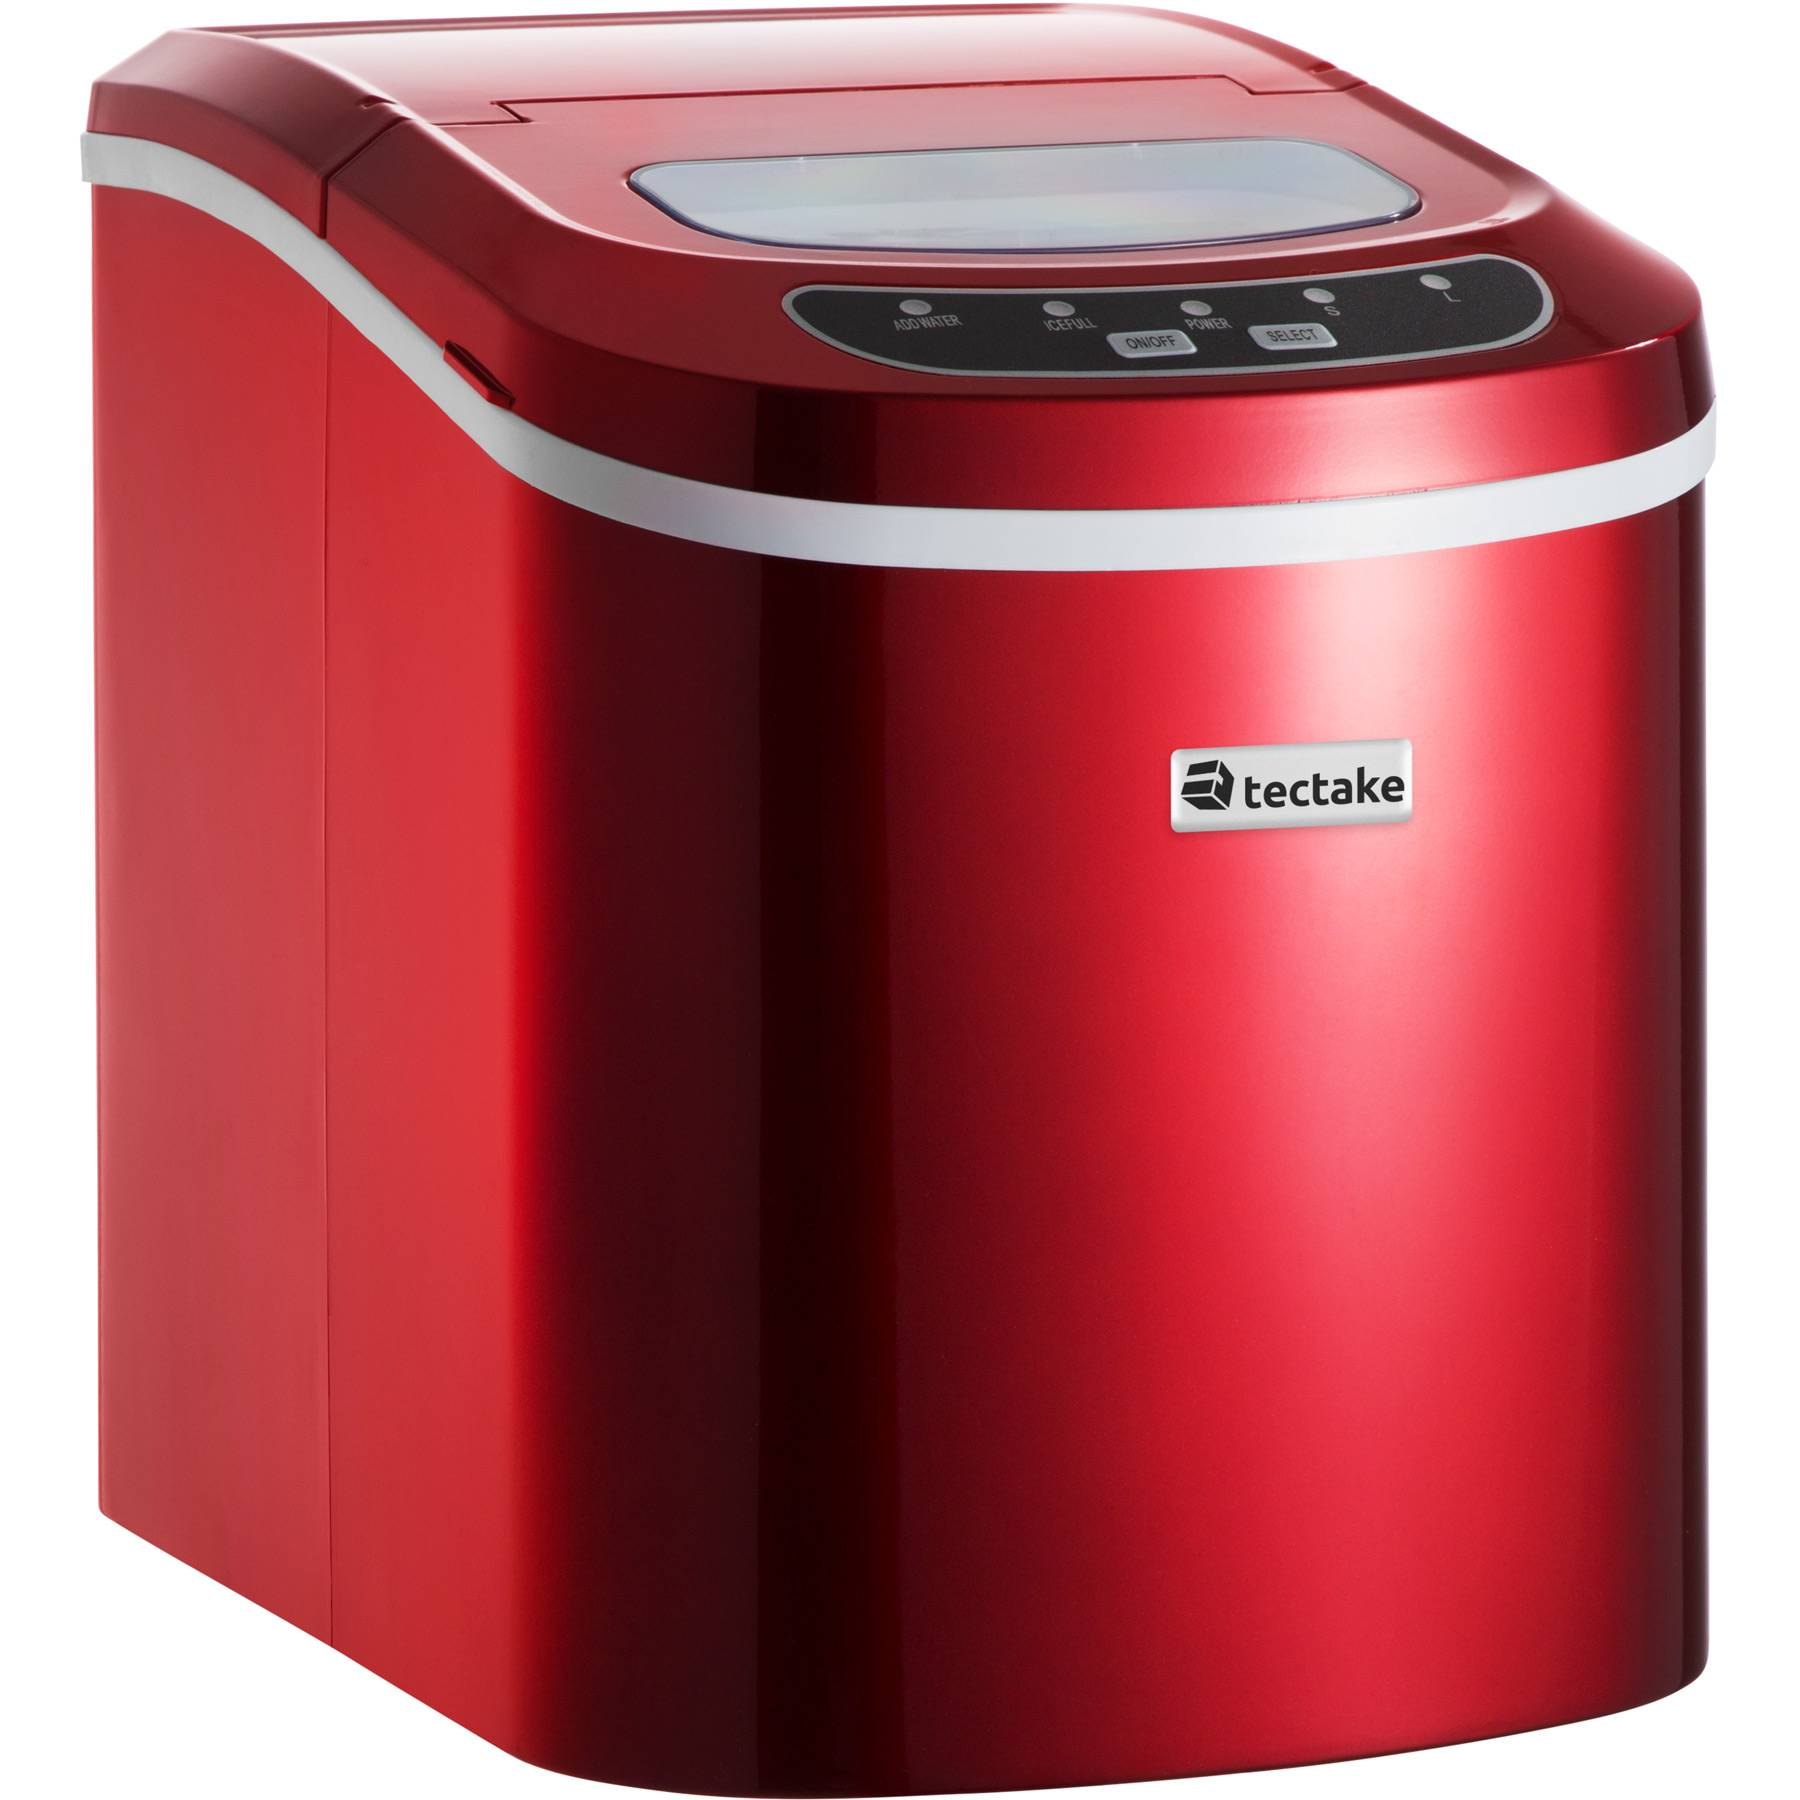 tectake Ice maker bullet ice - red